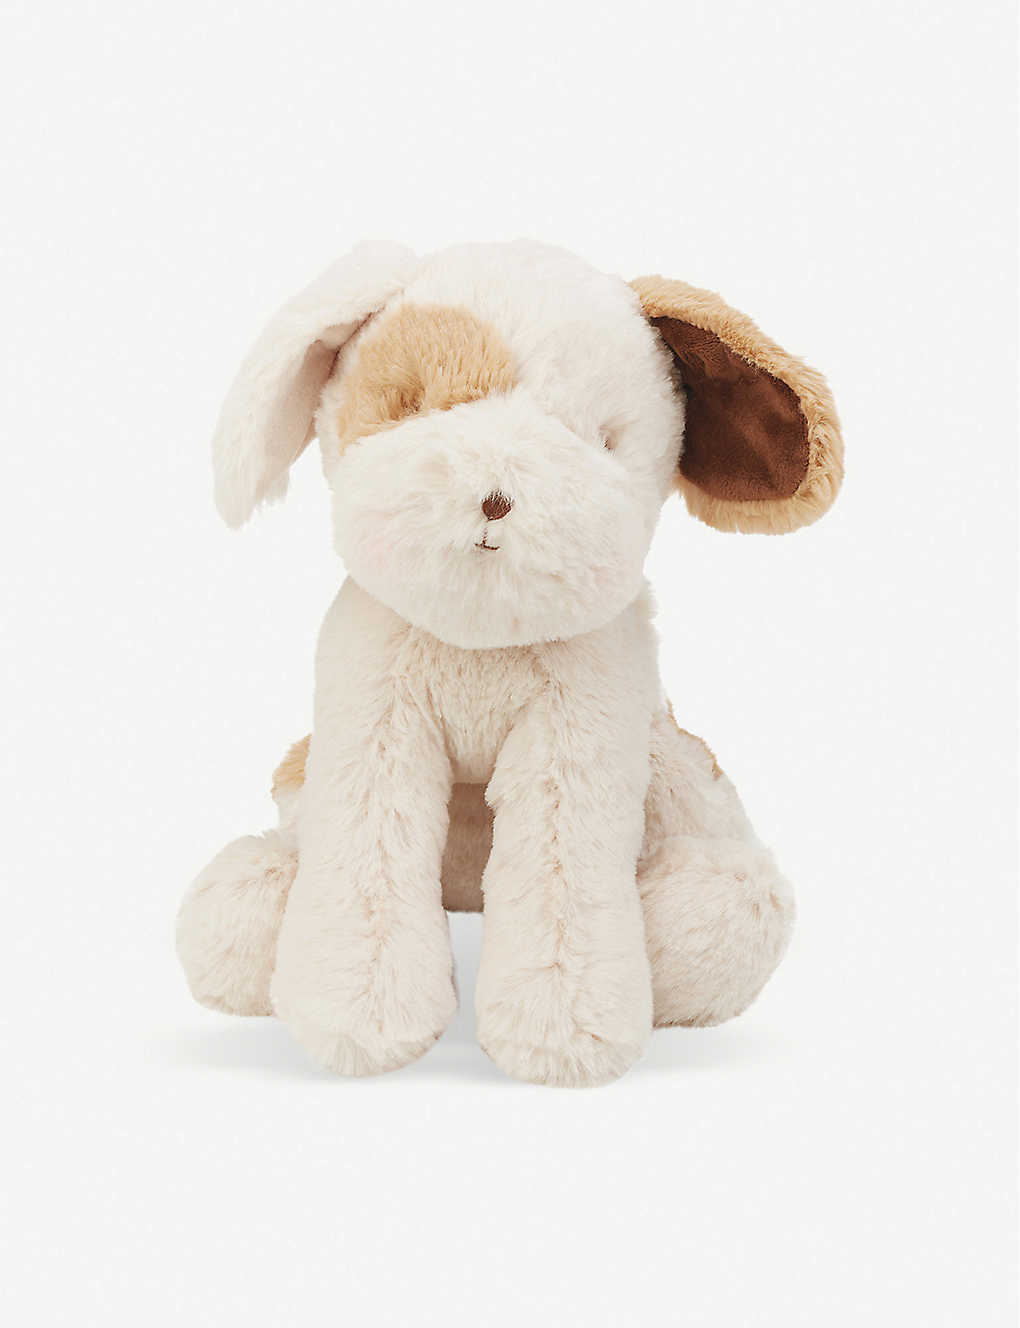 BUNNIES BY THE BAY: Little Skipit toy puppy 30cm